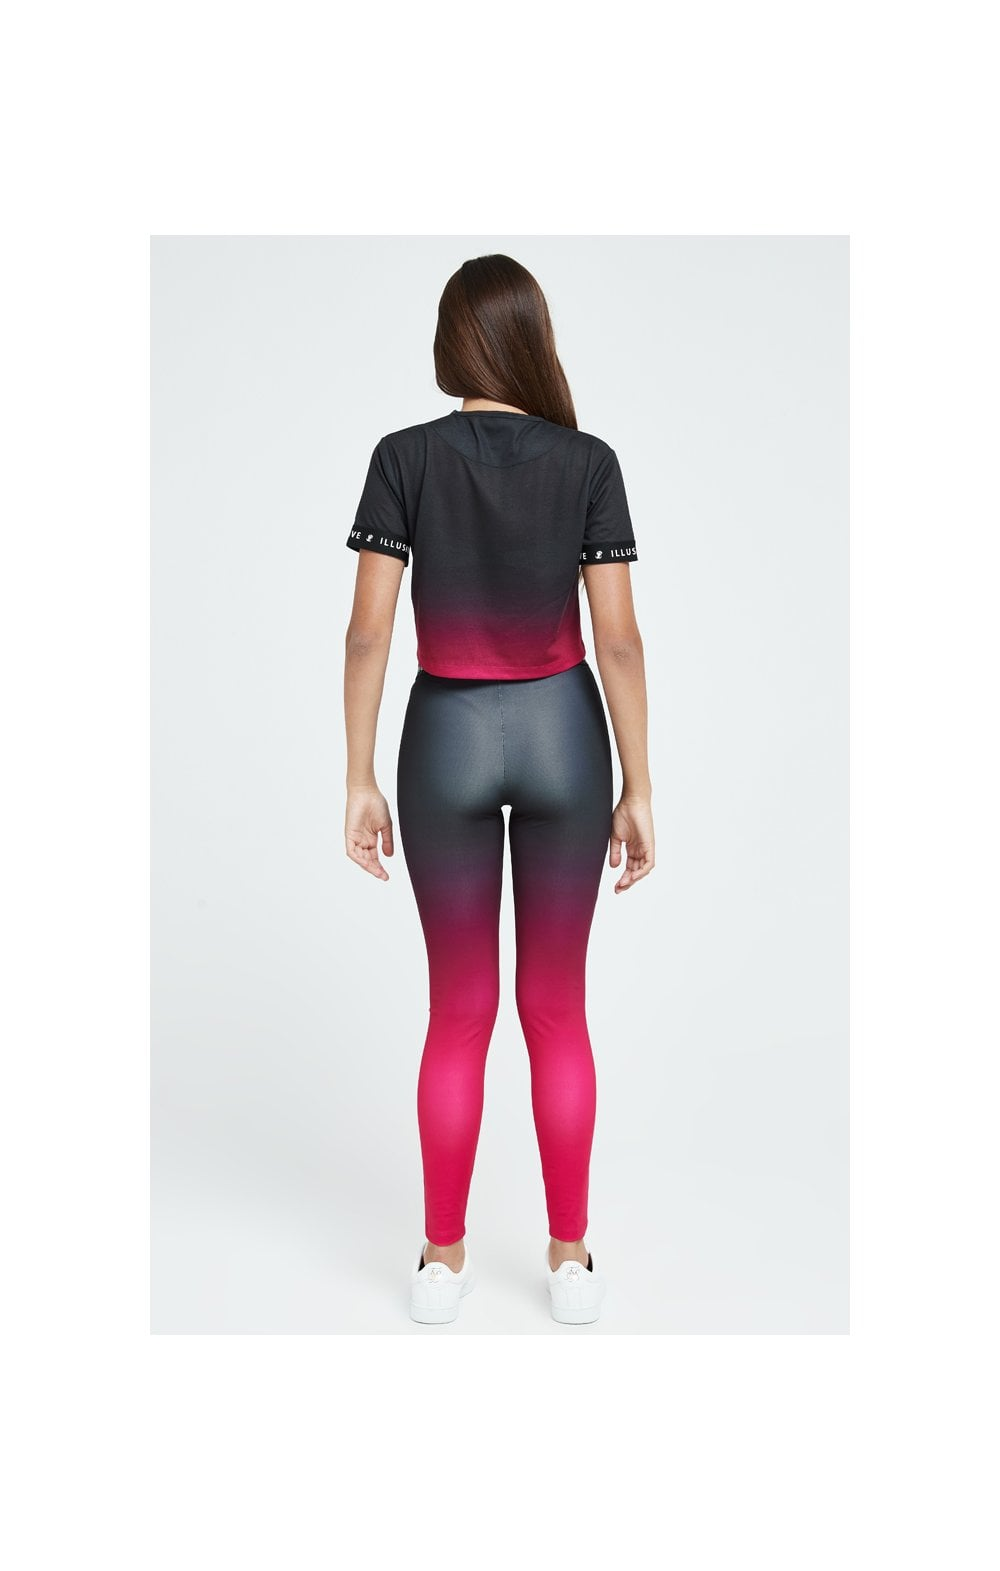 Illusive London Fade Leggings - Pink & Black (5)